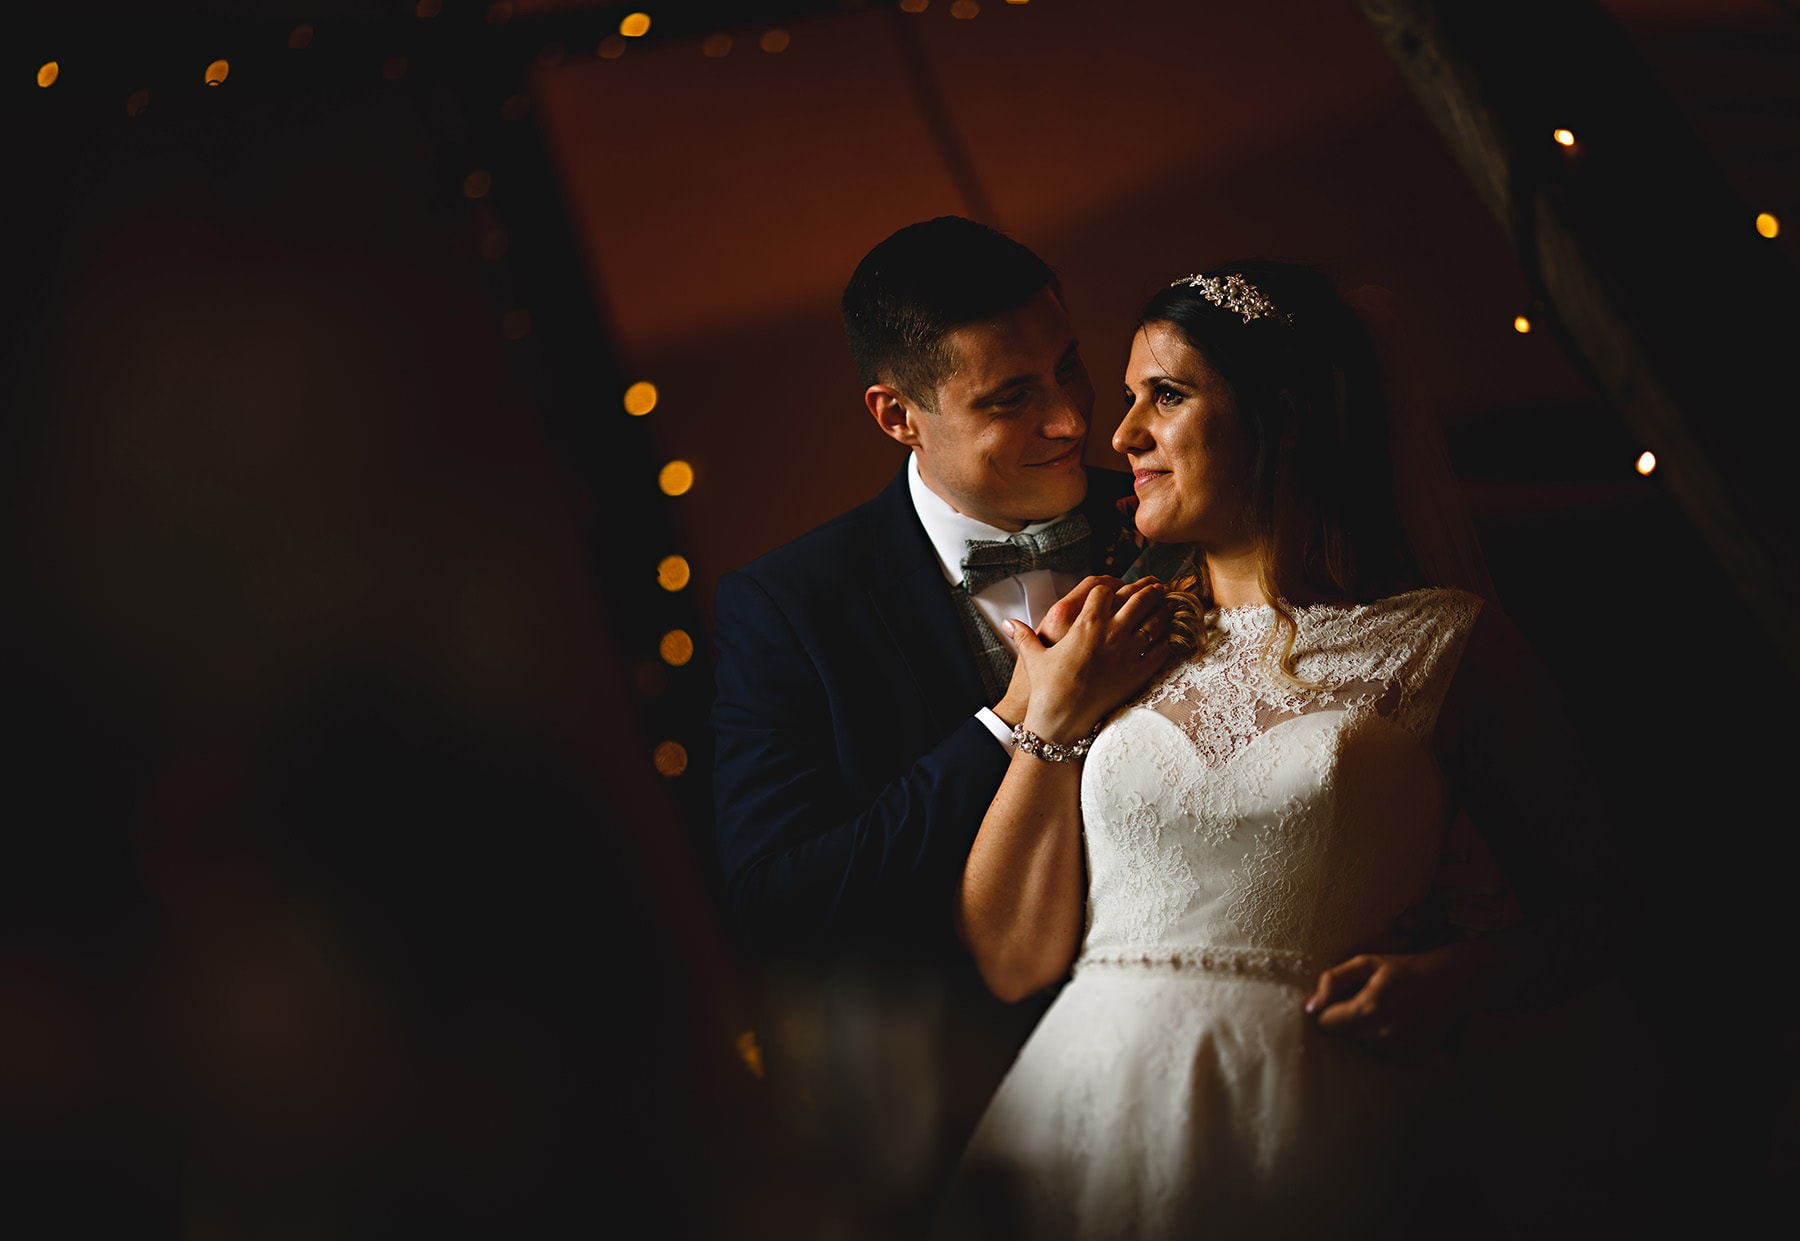 the bride and groom stood together inside the tipi on their wedding day